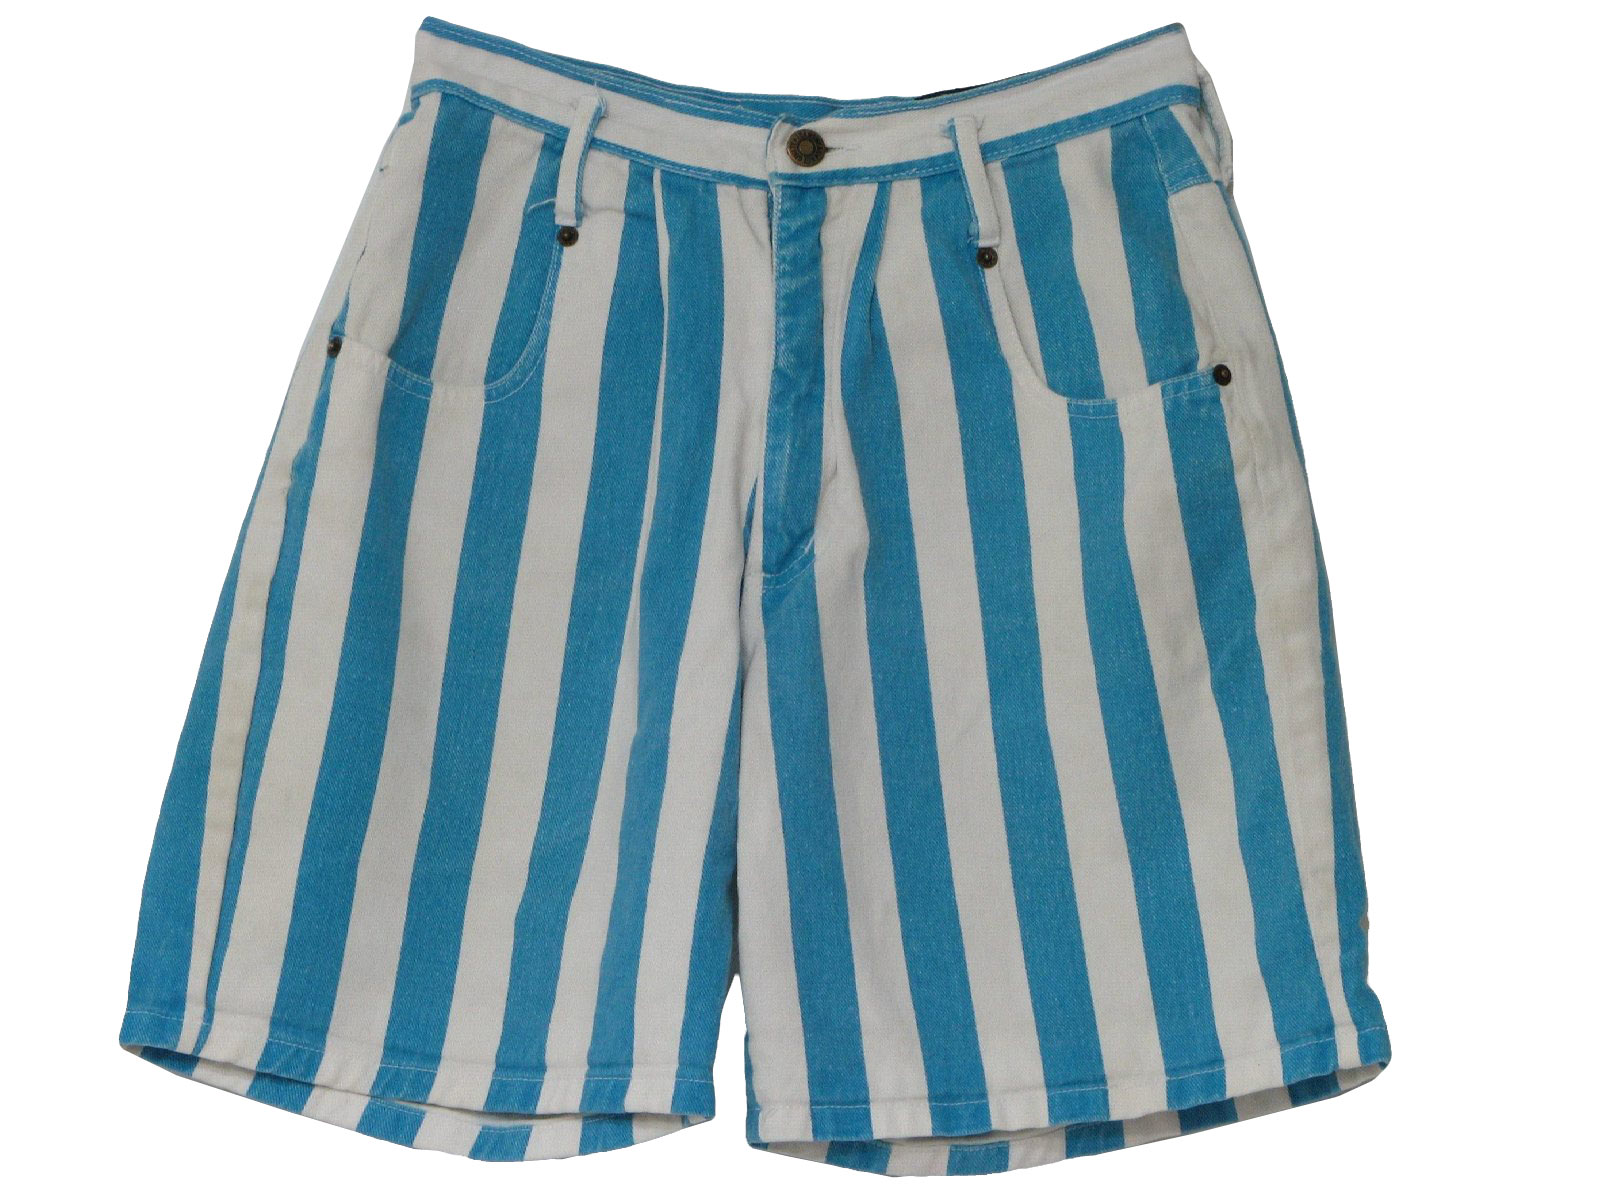 Womens white and teal vertical stripe print cotton jean shorts with four pockets, pleated waistline and button/zip closure.